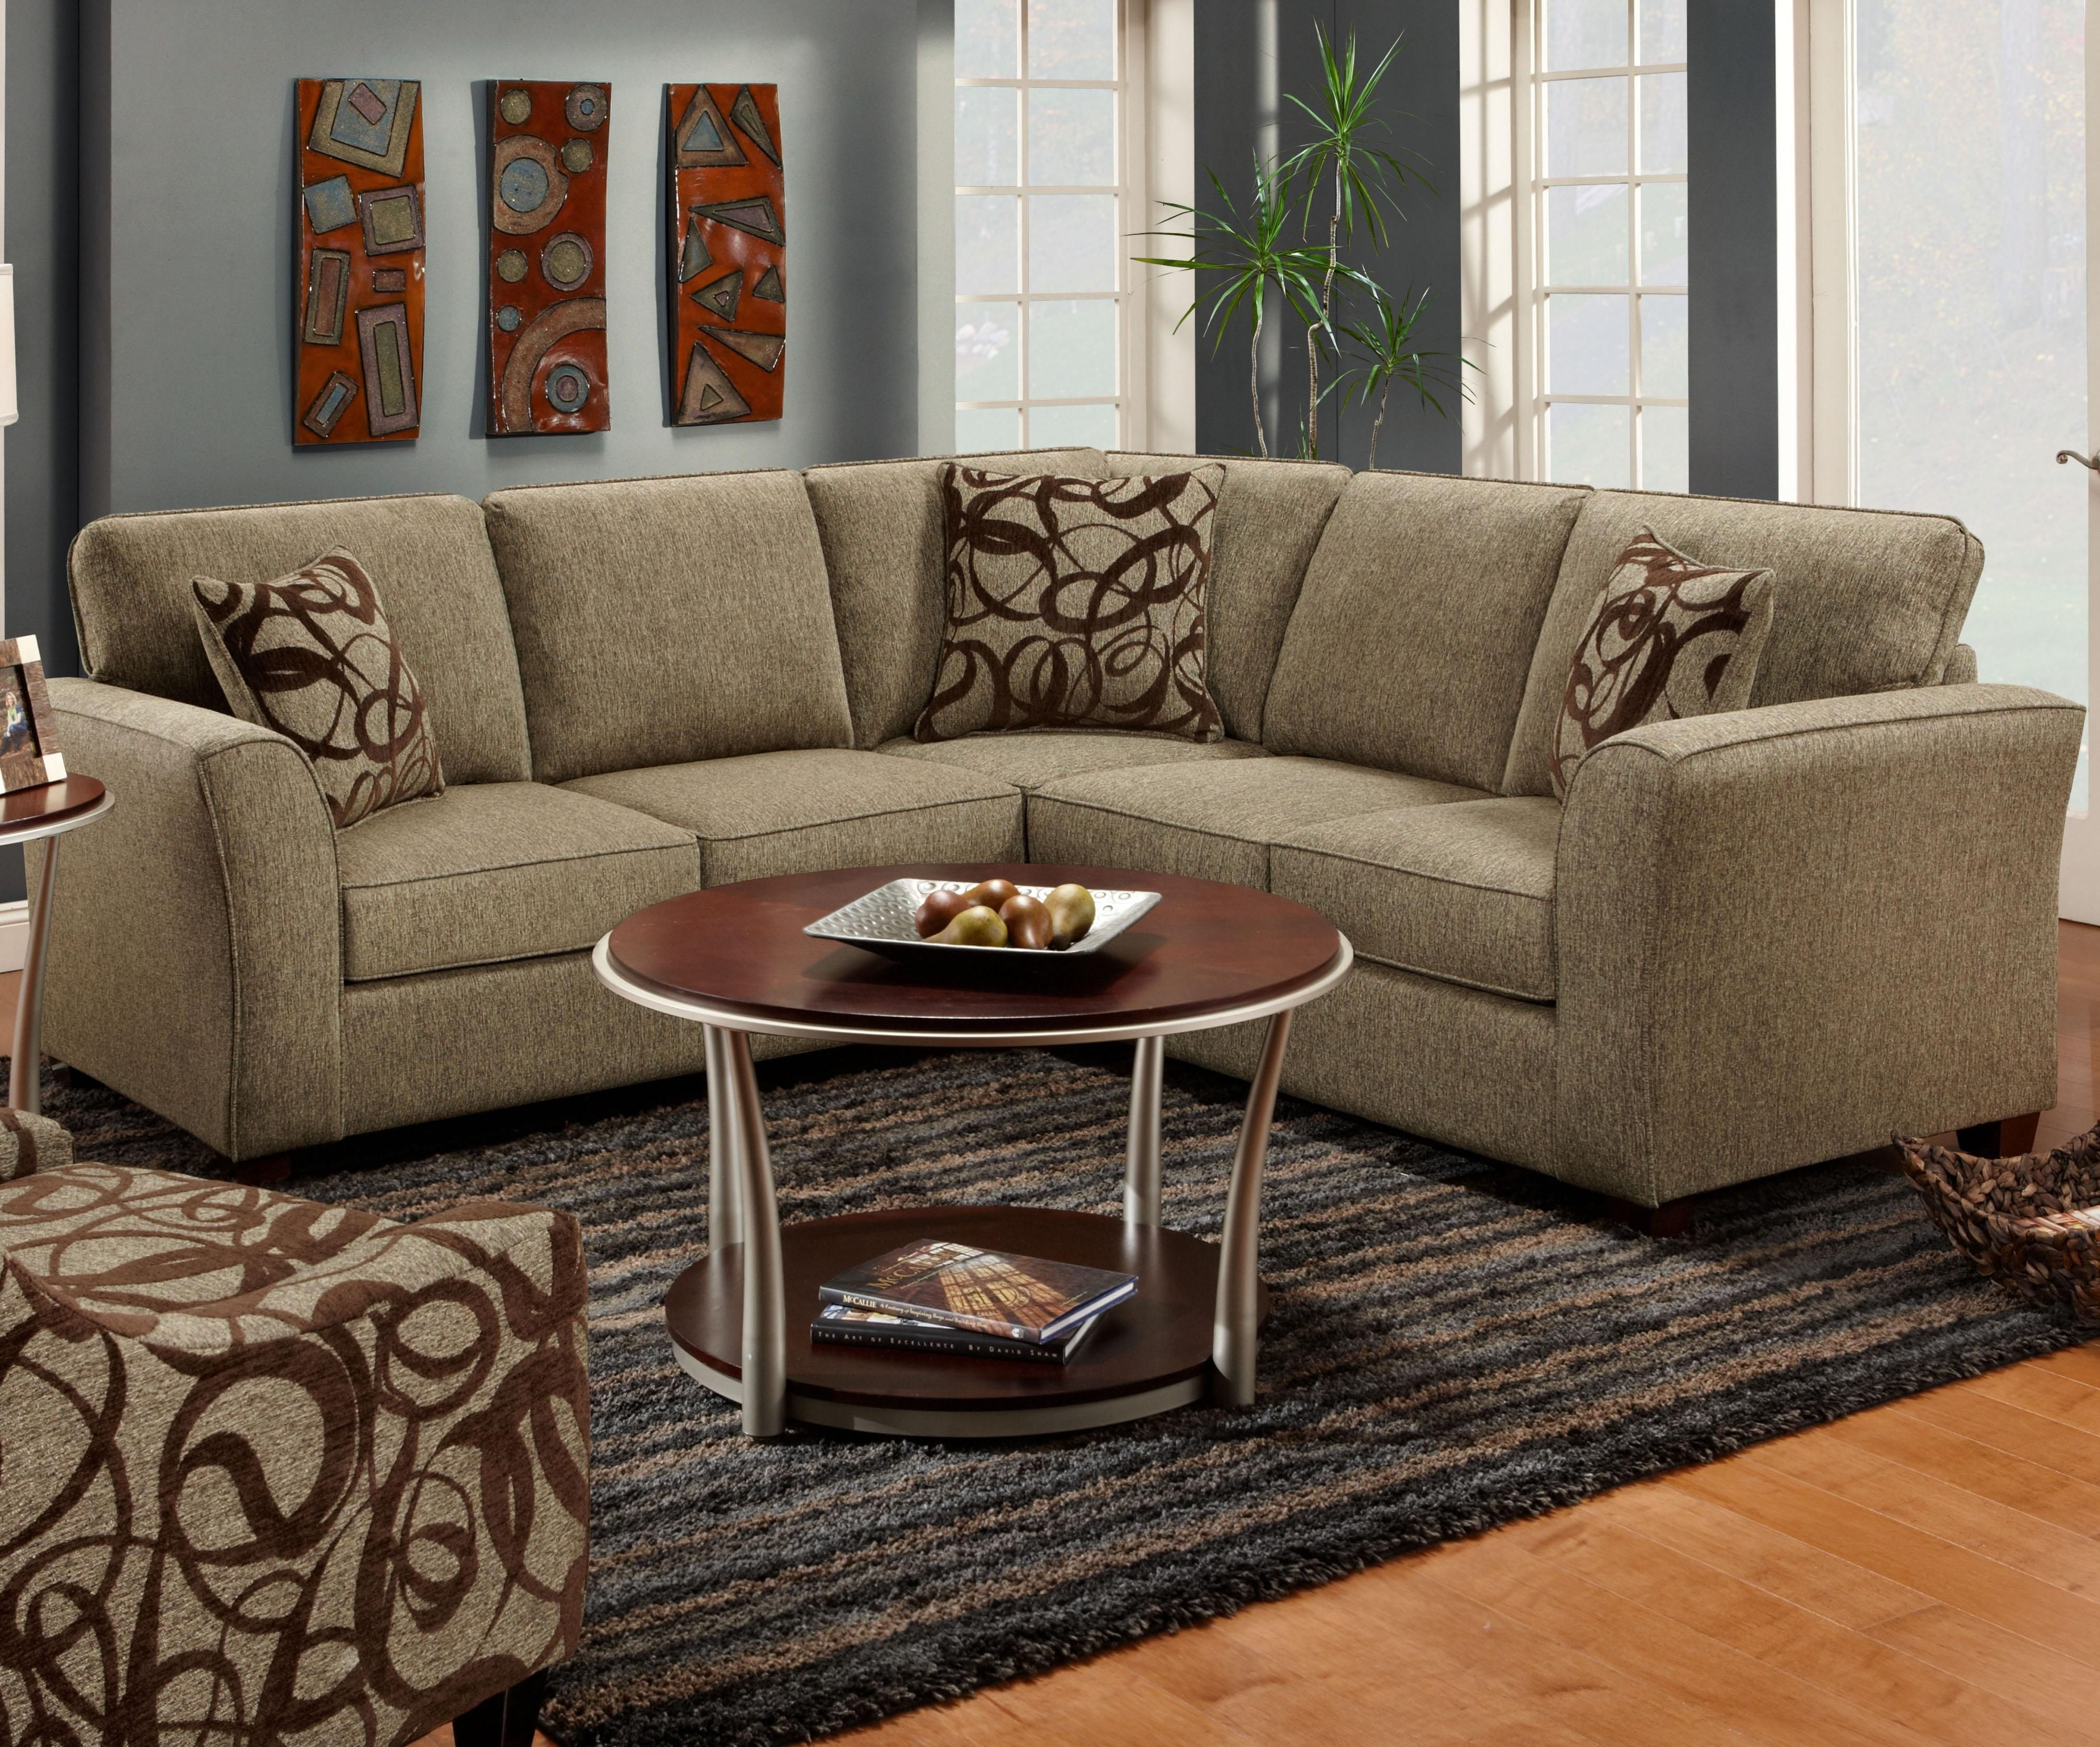 1295-1296 2-Piece Sectional Sofafusion Furniture | For The Home within Jackson Ms Sectional Sofas